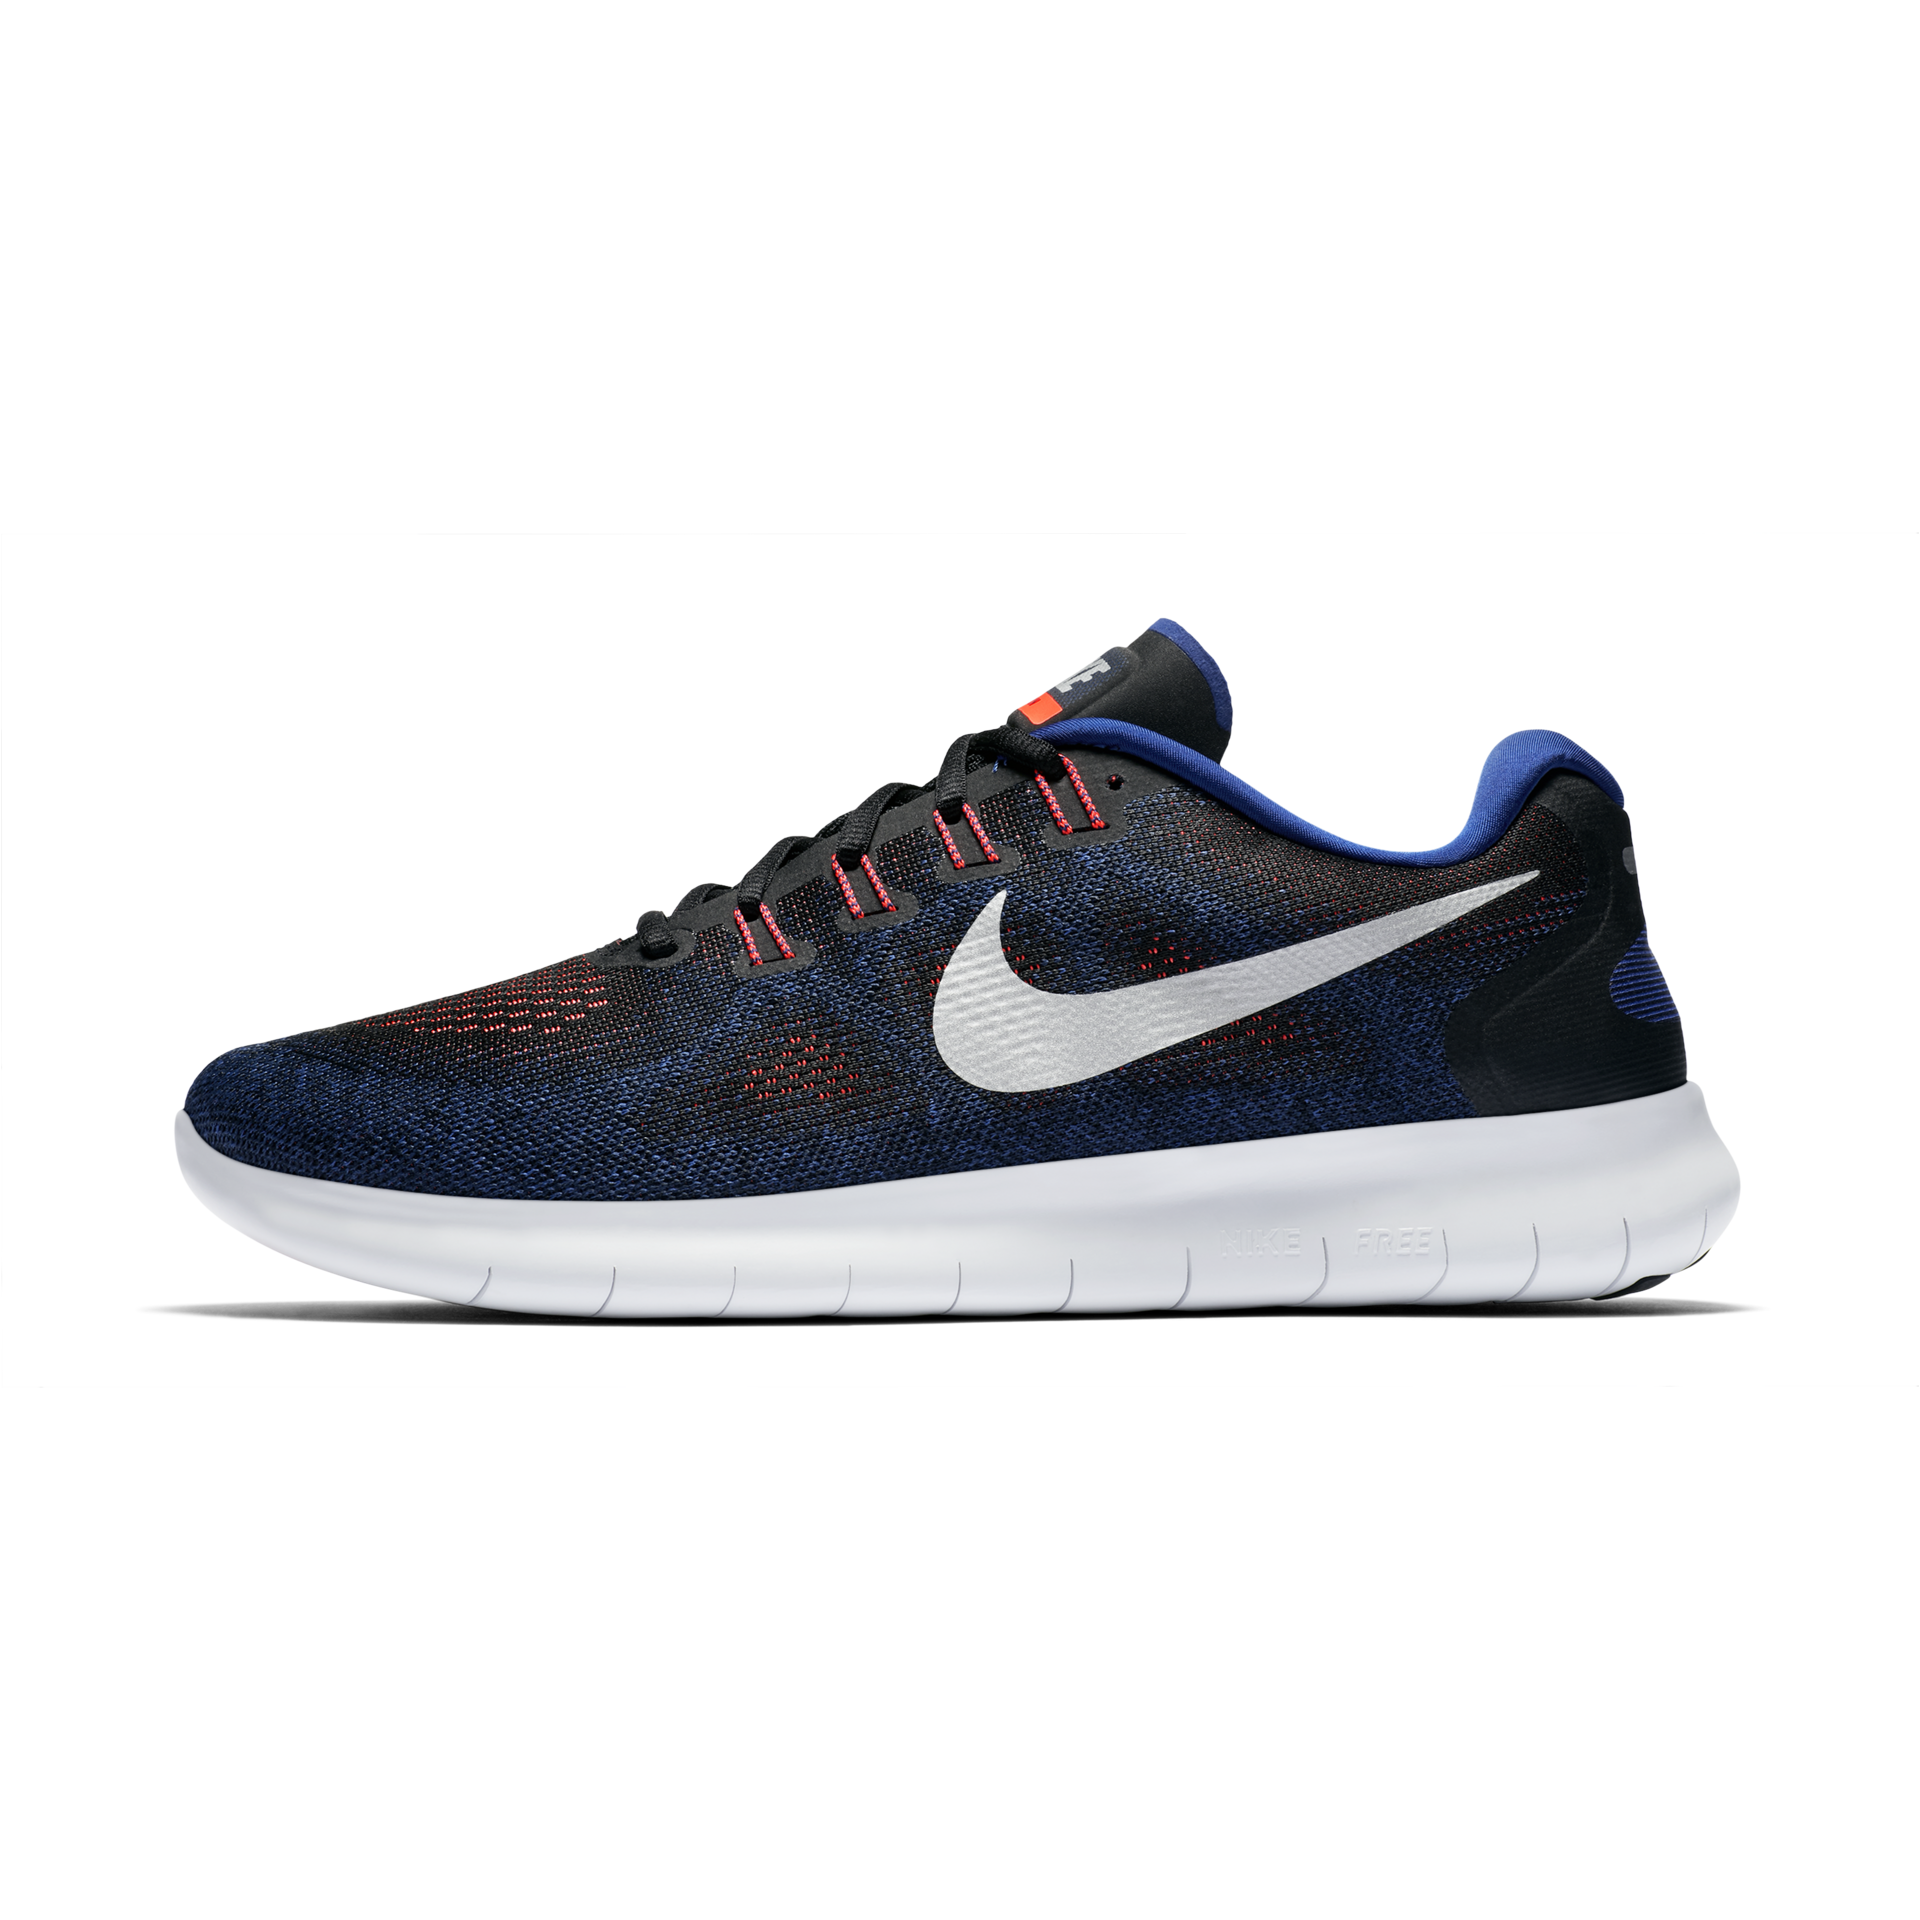 9242c377eec86 ... official nike free everyday 2 mens nike wmns nike lunarglide 3 product  description women 9072f 5f6e6